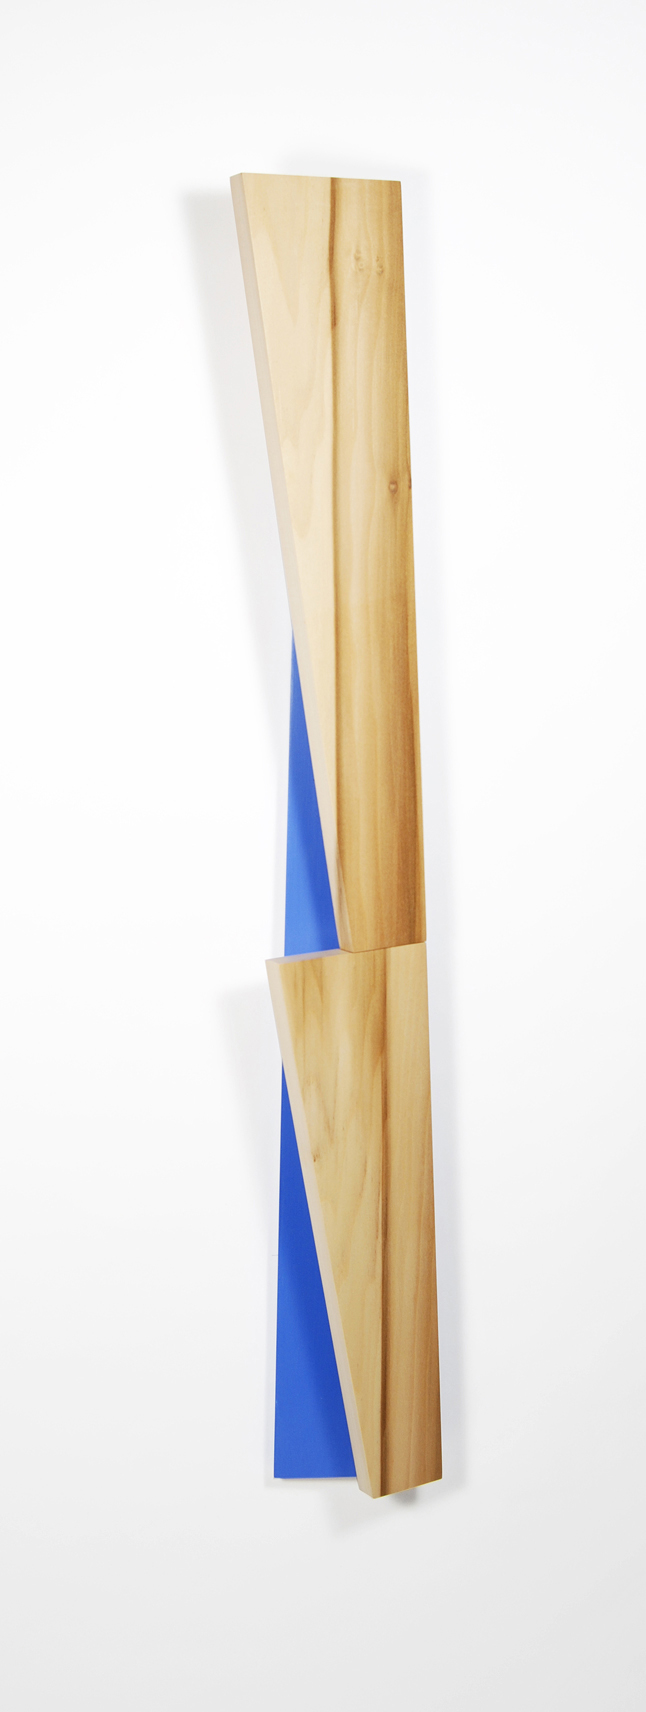 Richard Bottwin   Poplar Beam.2   2018  Poplar and acrylic paint on birch plywood  Signed and dated by the artist,  verso   35 x 4.5 x 3.5 inches